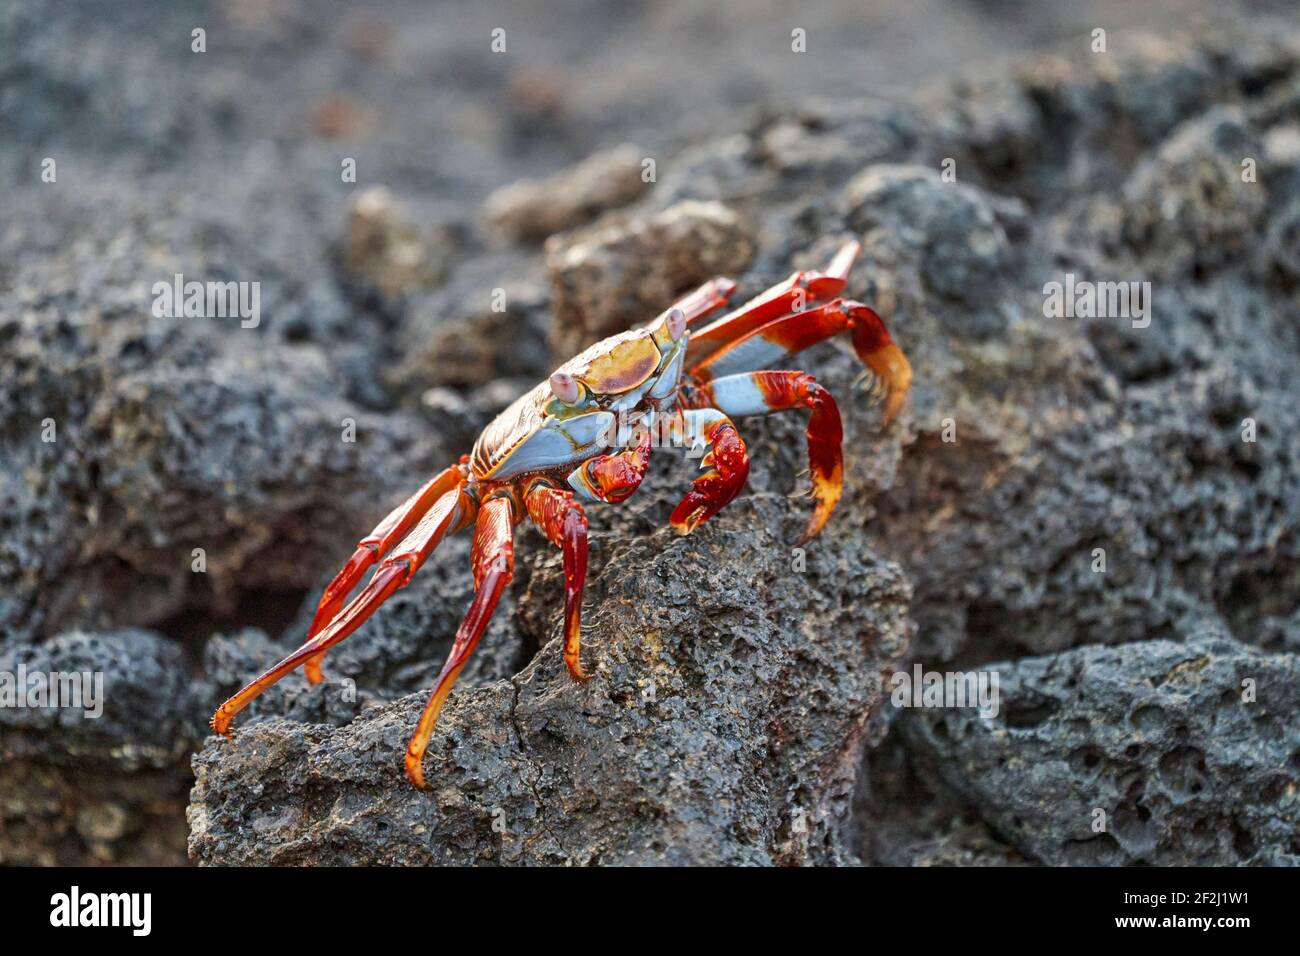 red rock crab , Grapsus grapsus, also known as Sally Lightfoot crab sitting on the lava rocks of the galapagos islands, Ecuador, South America Stock Photo